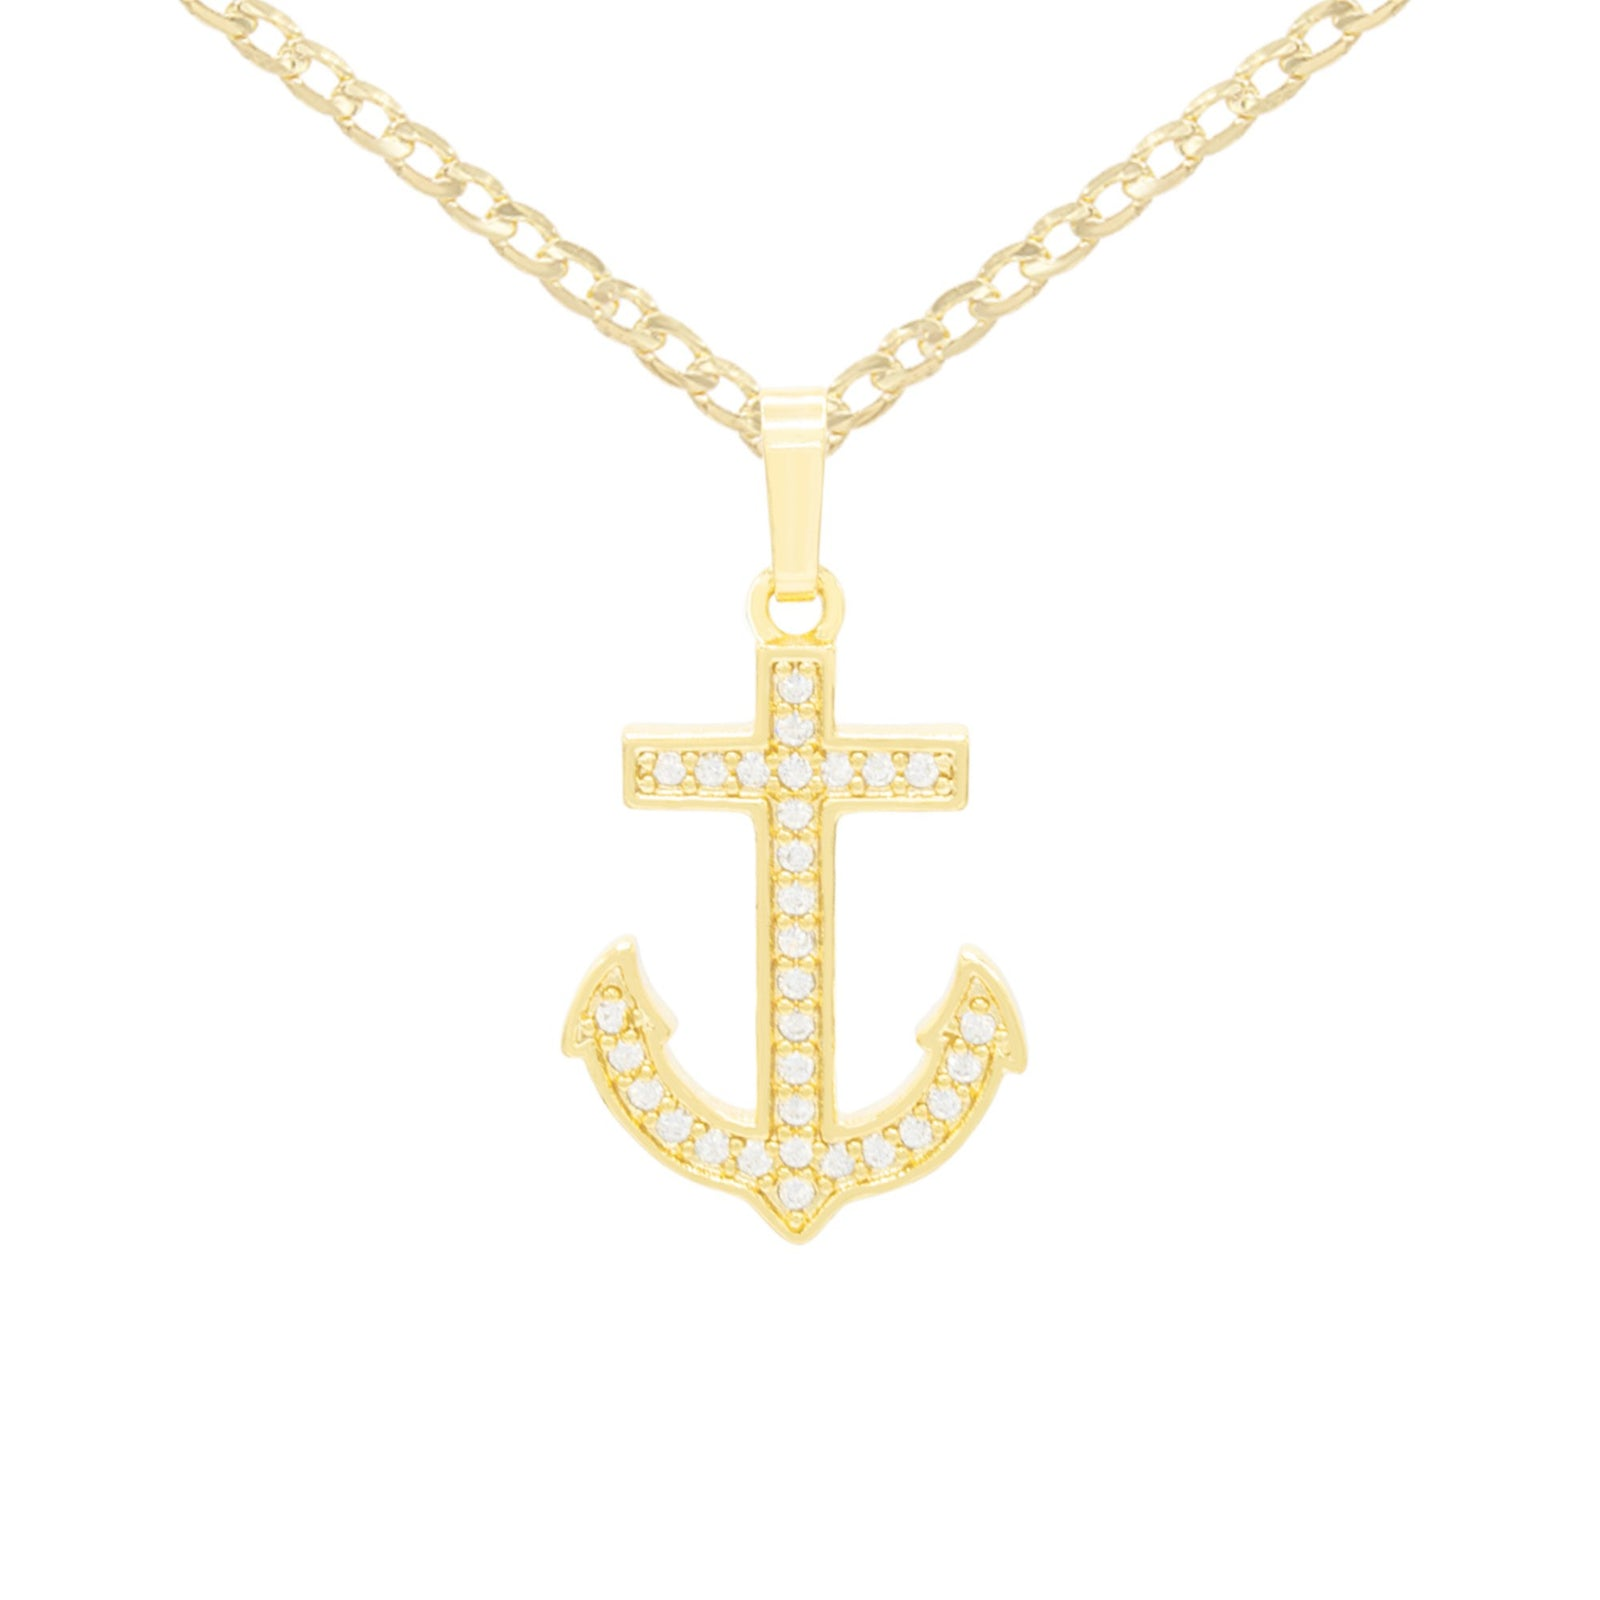 CZ Devil Anchor Cross Cubic Zirconia Pendant With Necklace Set 14K Gold Filled